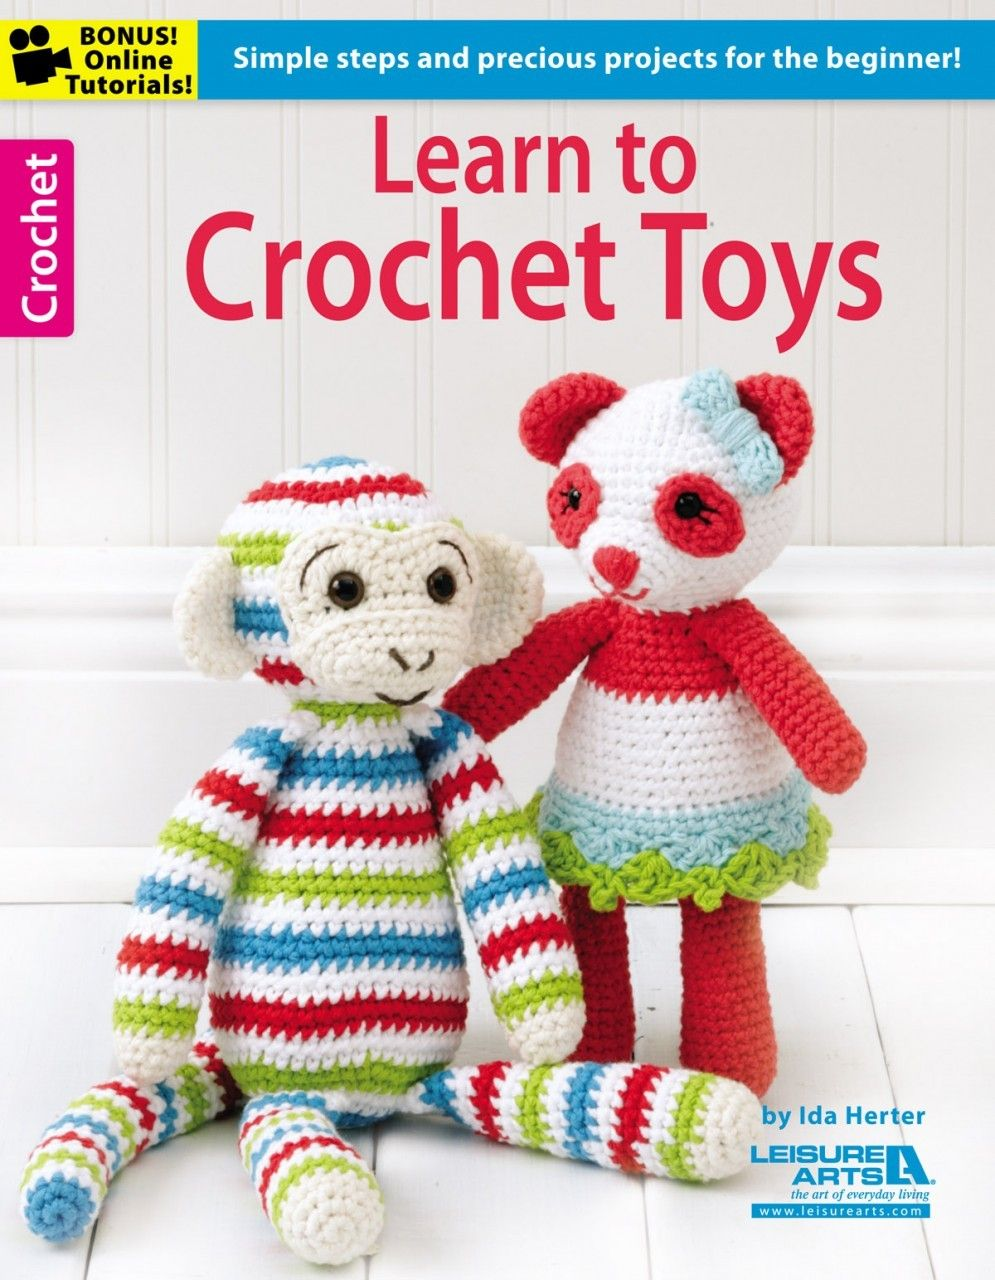 Learn to Crochet Toys | Crocheted toys, Amigurumi and Crochet